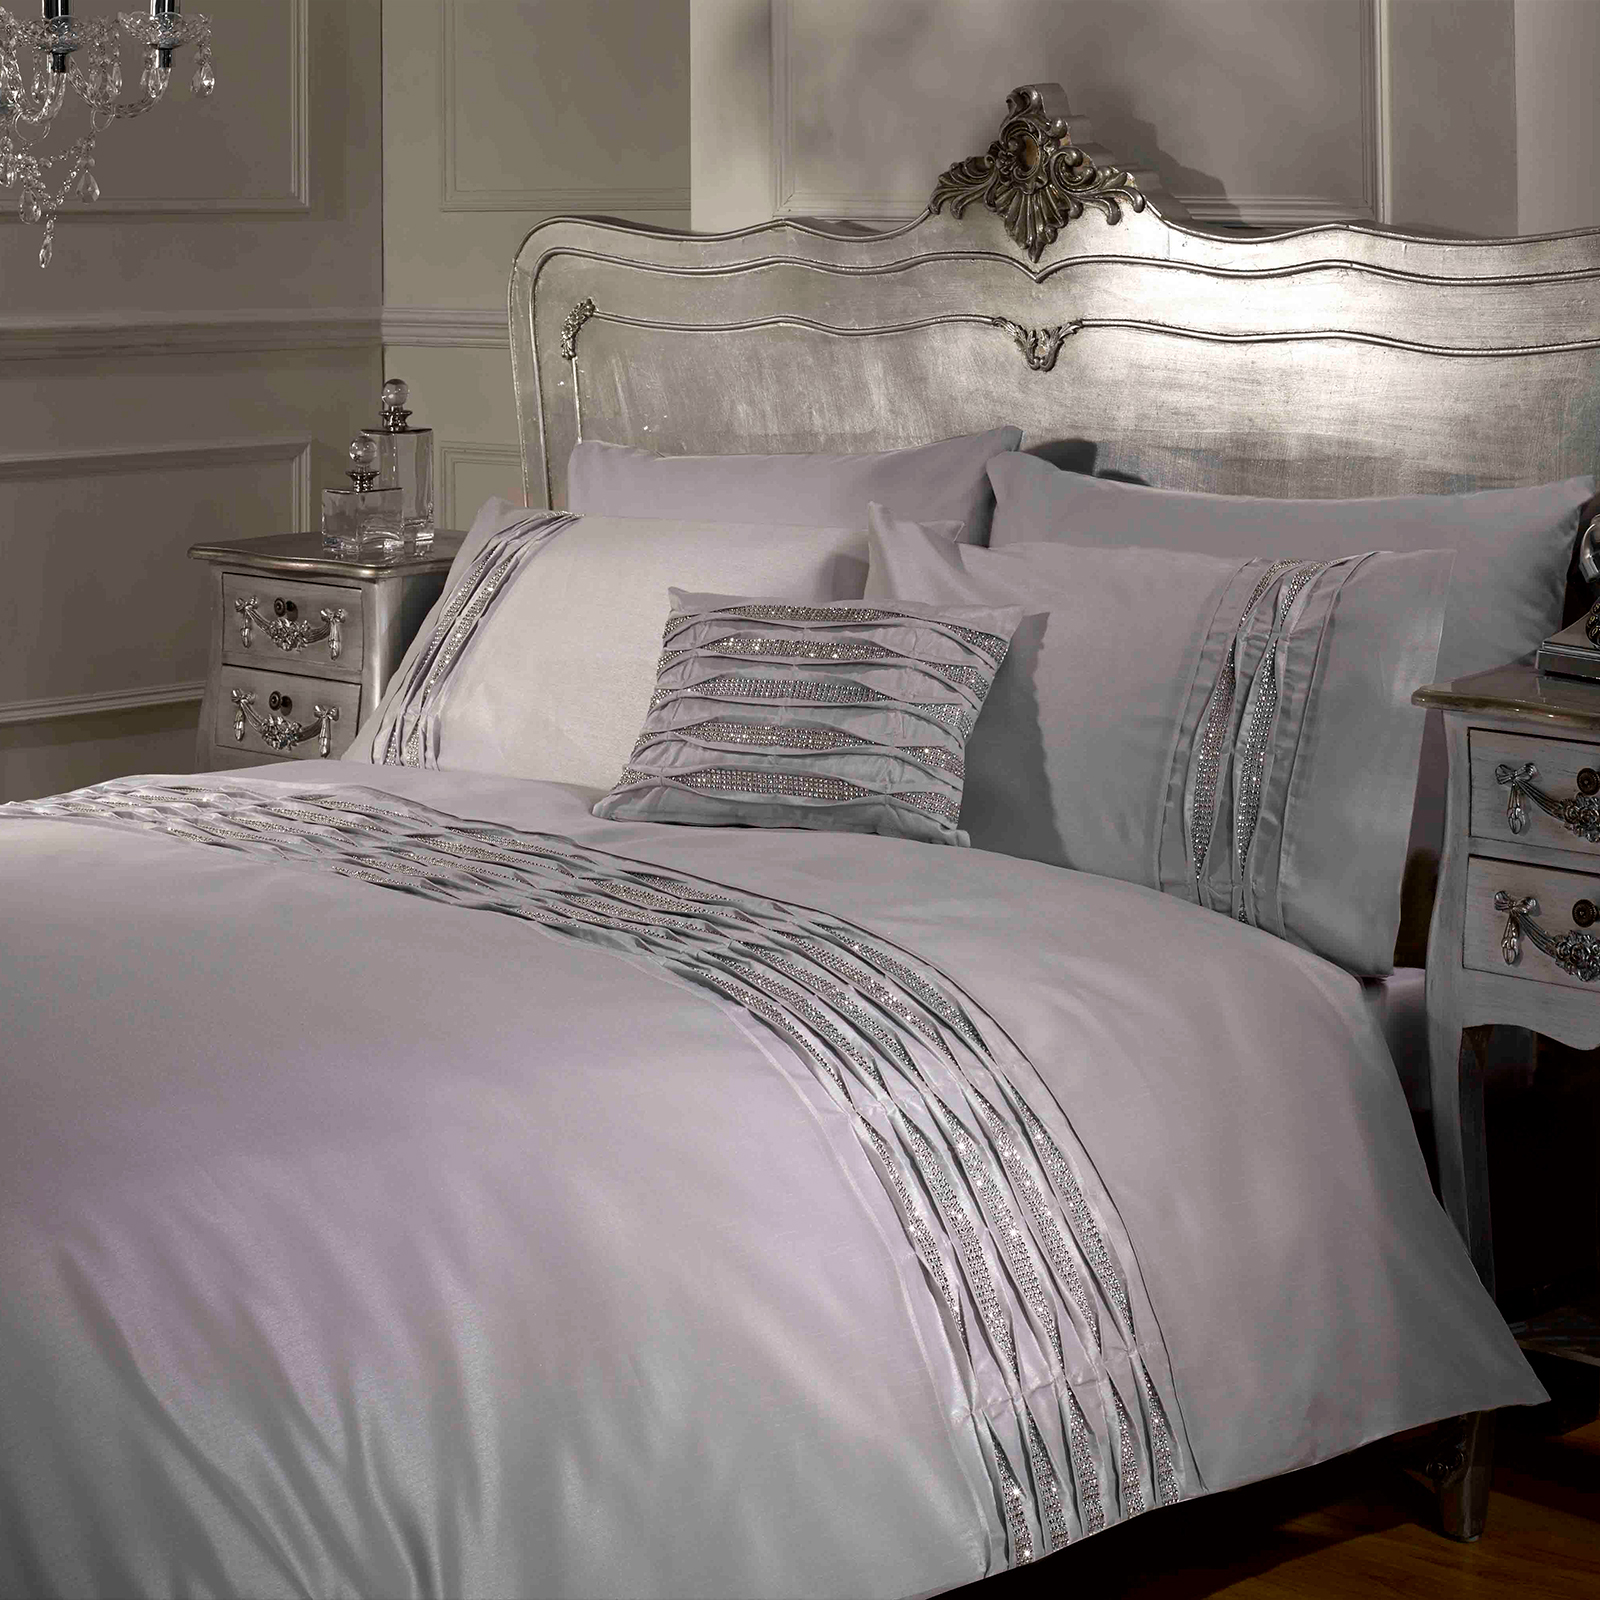 luxe crystal diamant housse de couette pintuck contemporain literie ensemble lit ebay. Black Bedroom Furniture Sets. Home Design Ideas